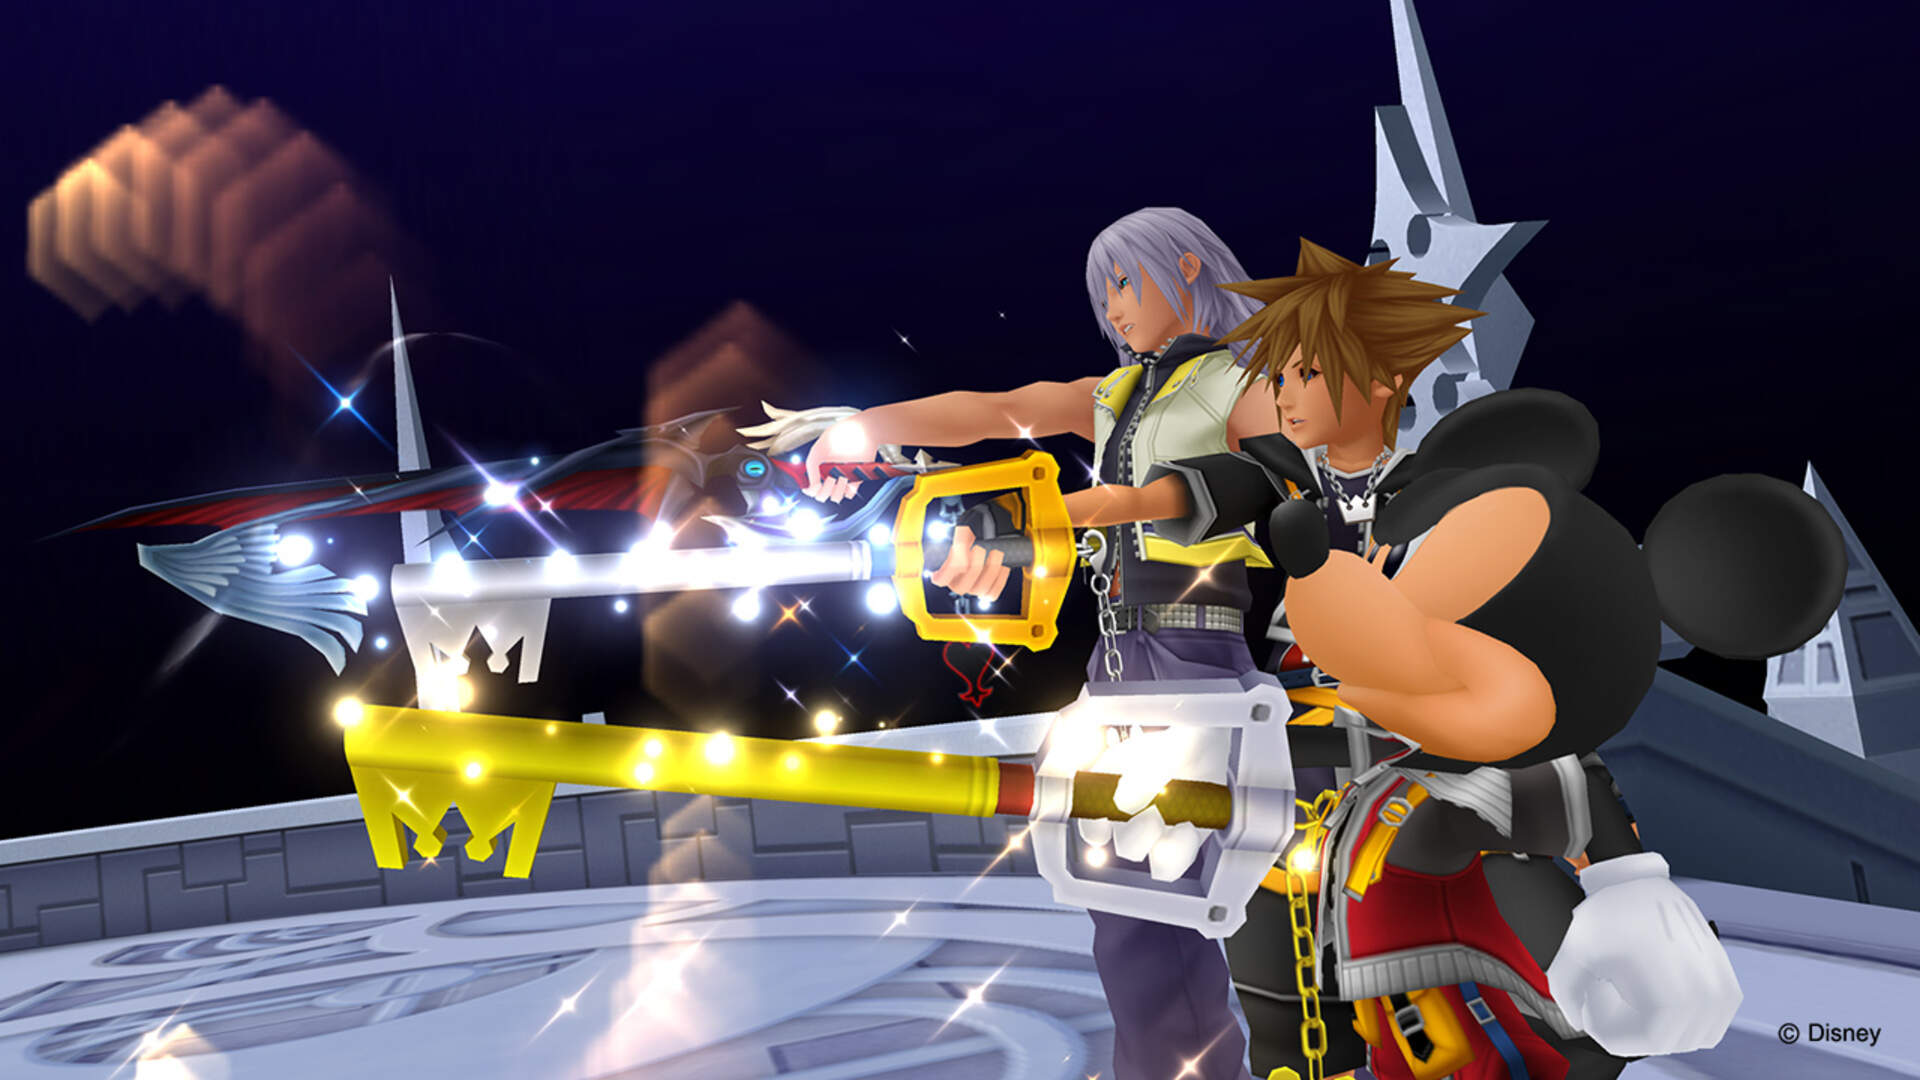 Kingdom Hearts 3 Primer: Making Sense of Kingdom Hearts' Notoriously Complex Story